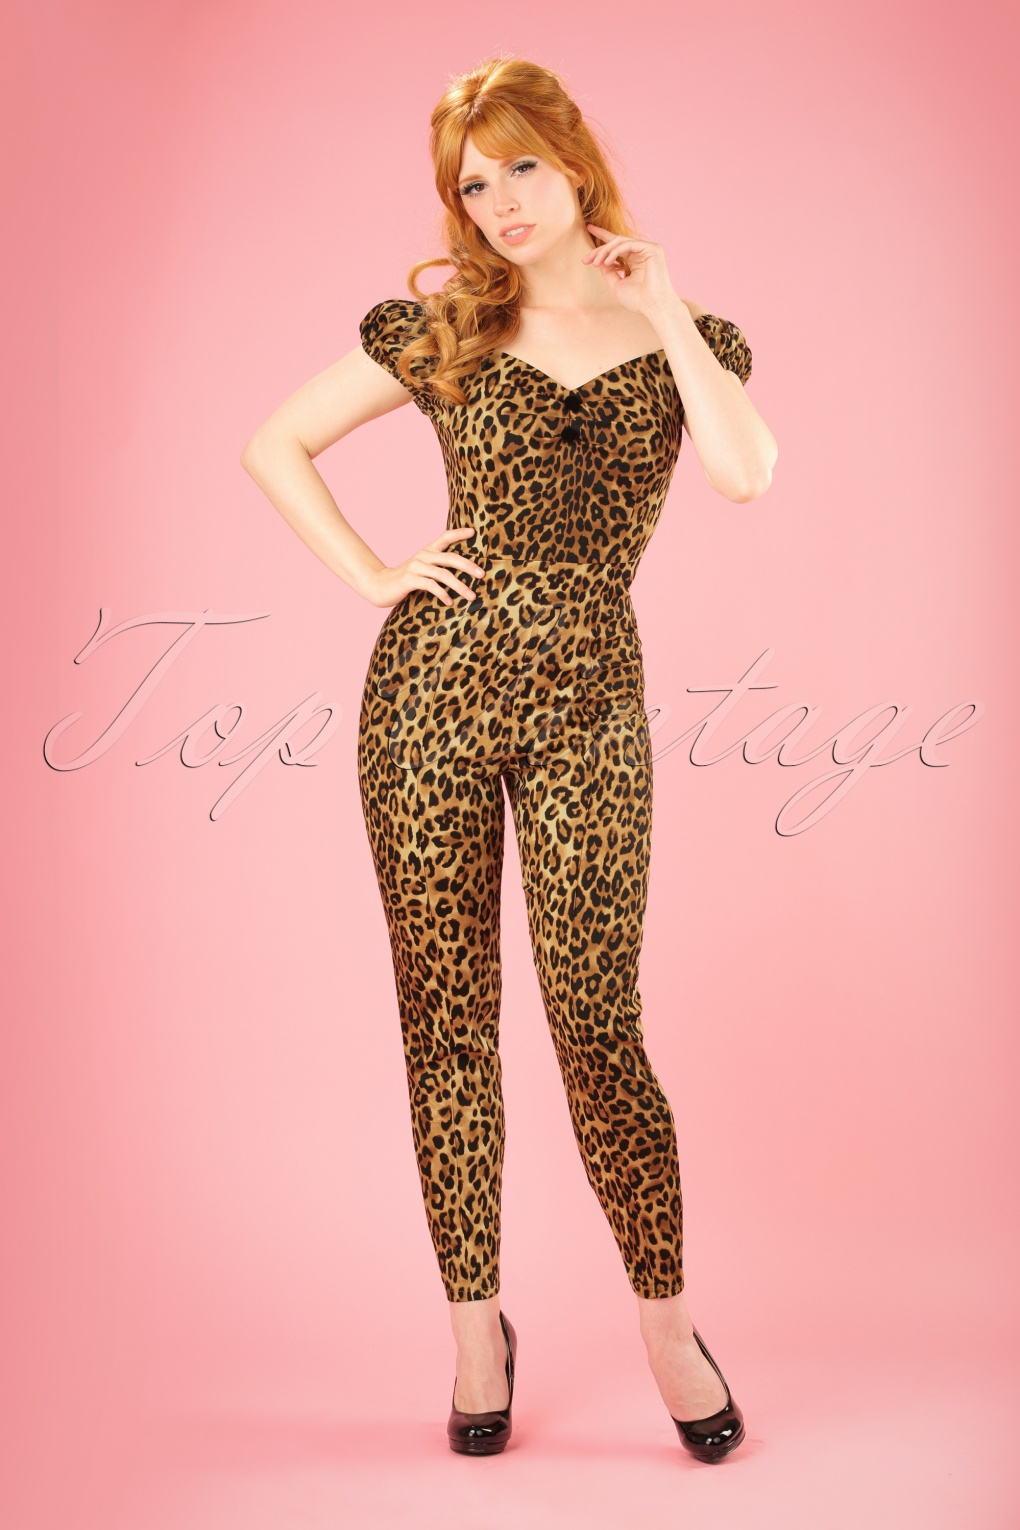 Vintage High Waisted Trousers, Sailor Pants, Jeans 50s Dolores Leopard Print Jumpsuit £53.90 AT vintagedancer.com